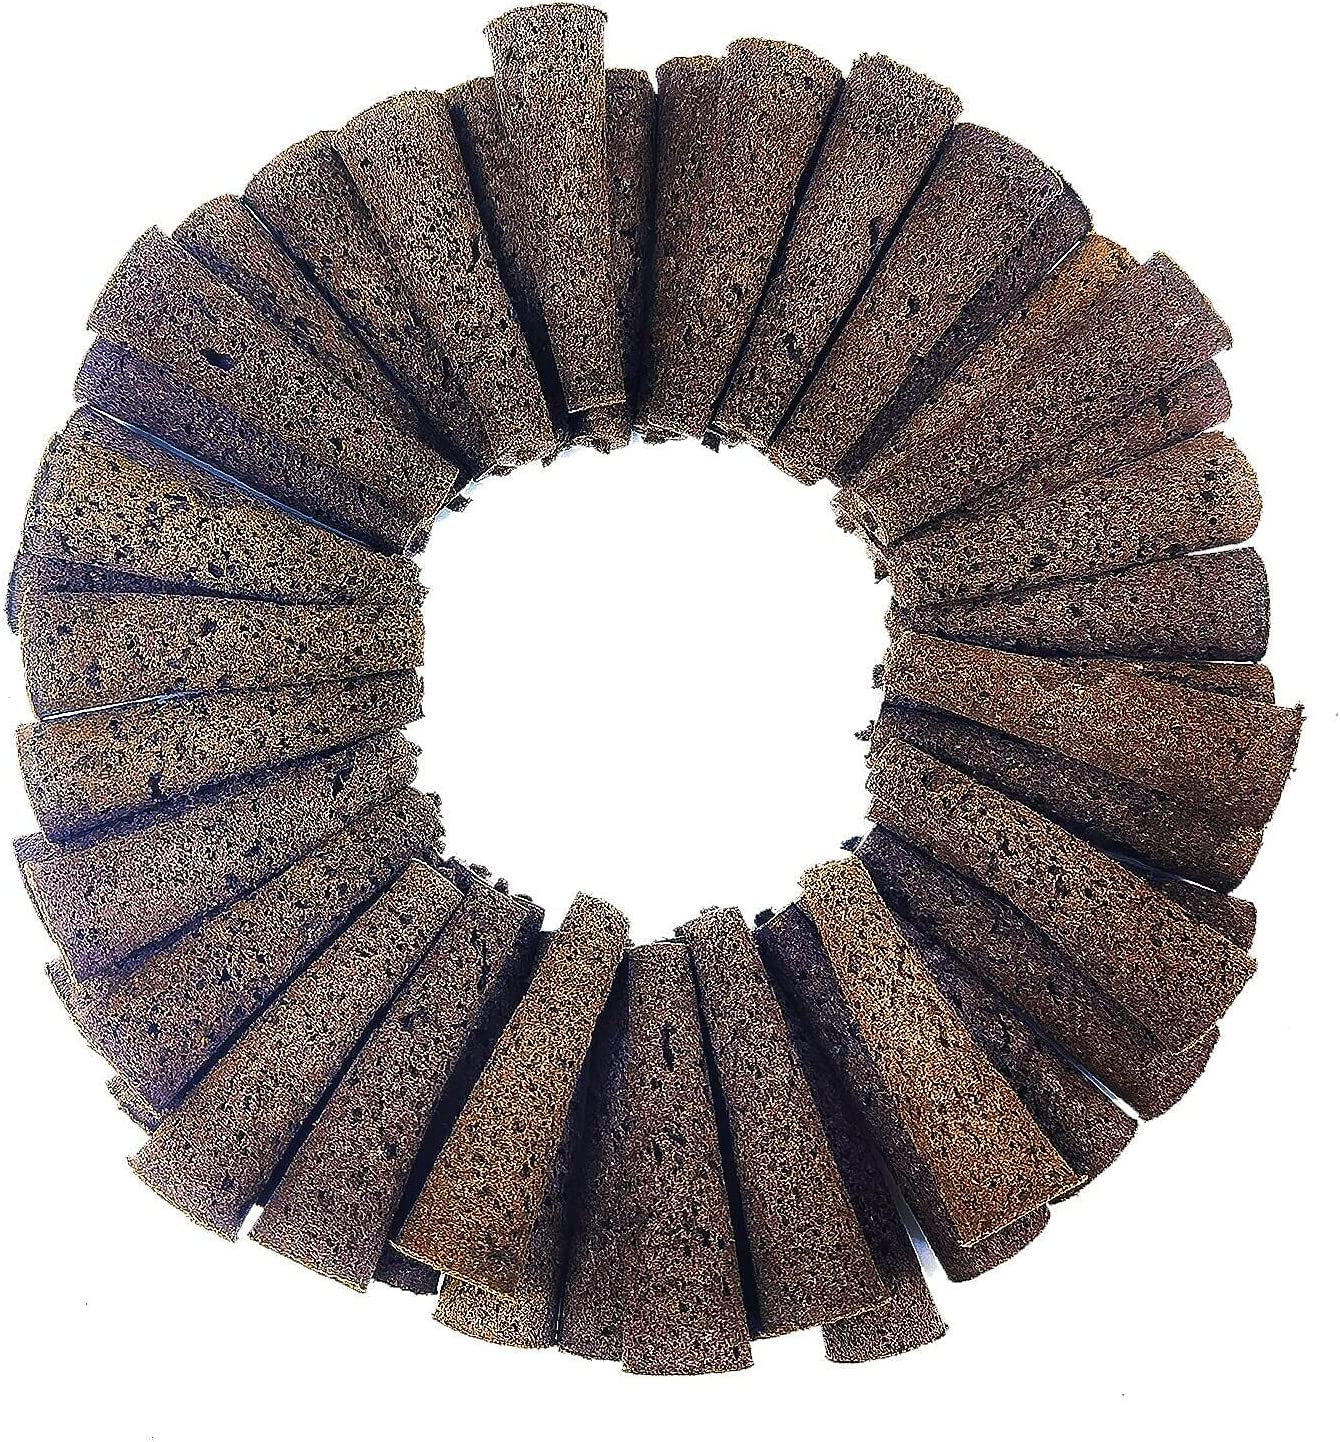 60 Park Grow Sponges for Hydroponics Pods Compatible with Aerogarden Pods and Idoo Pods-Round